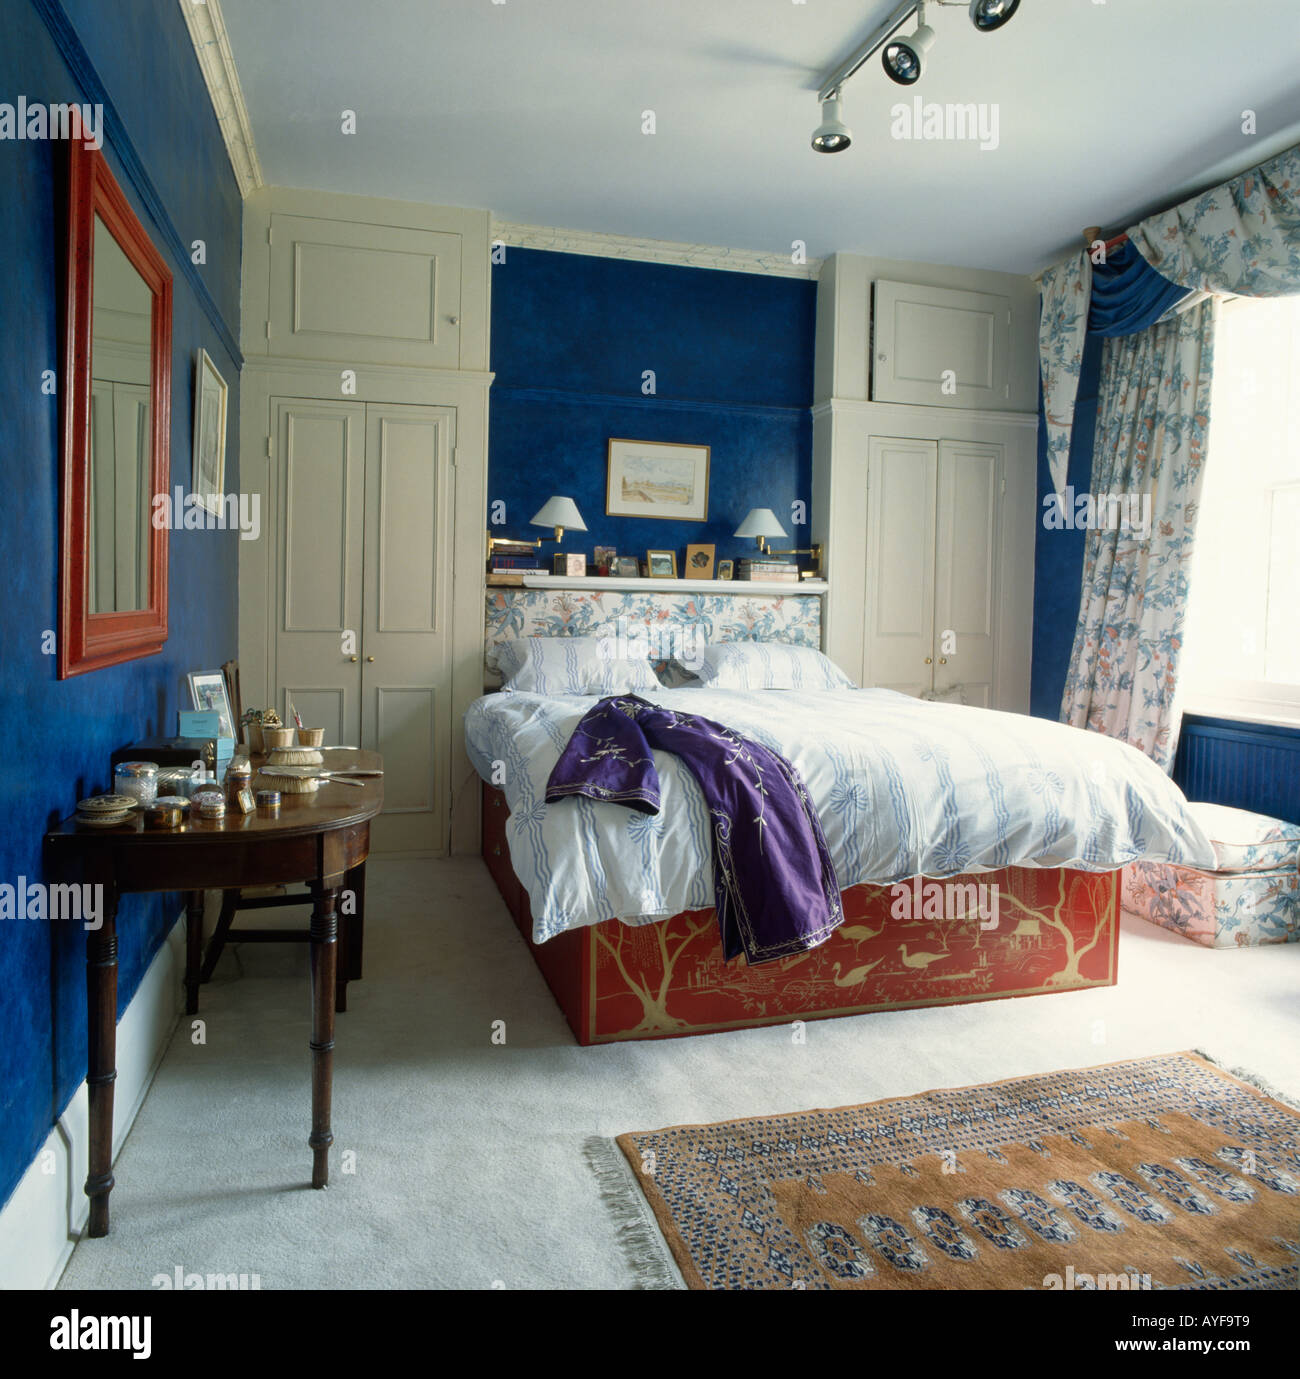 Image of: Blue Bedroom With Grey Carpet And Wall Cupboards Stock Photo Alamy